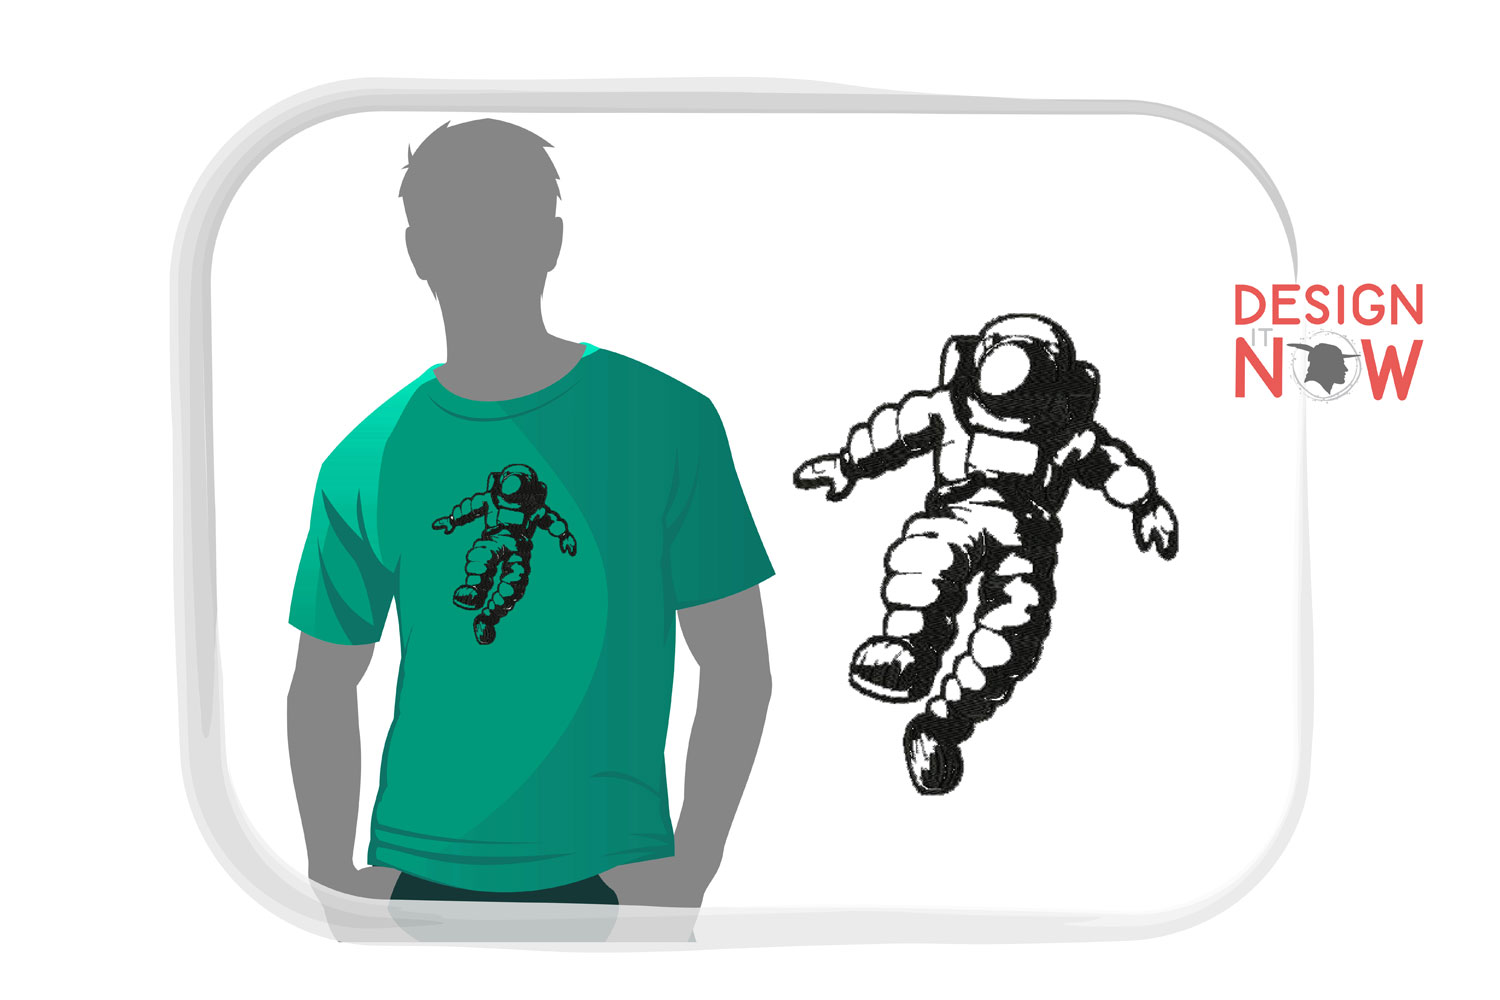 Astronaut Embroidery Design, Spaceship Embroidery Pattern example image 1